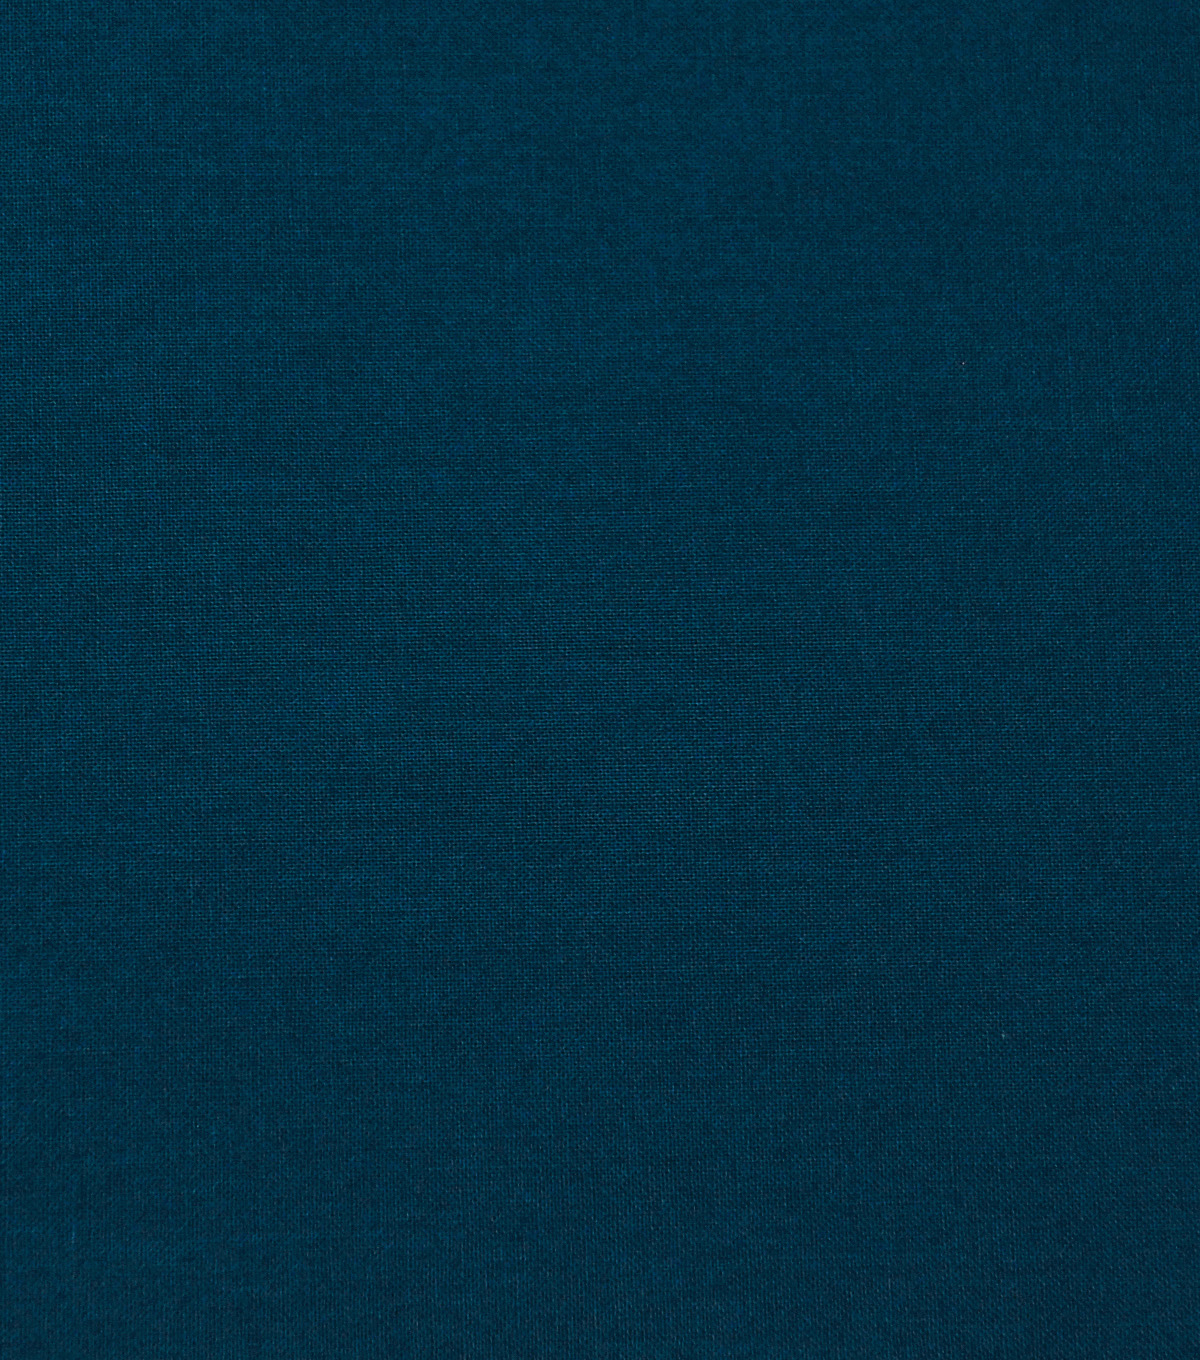 Wide Quilt Fabric 108\u0027\u0027-Turquoise, Turquoise